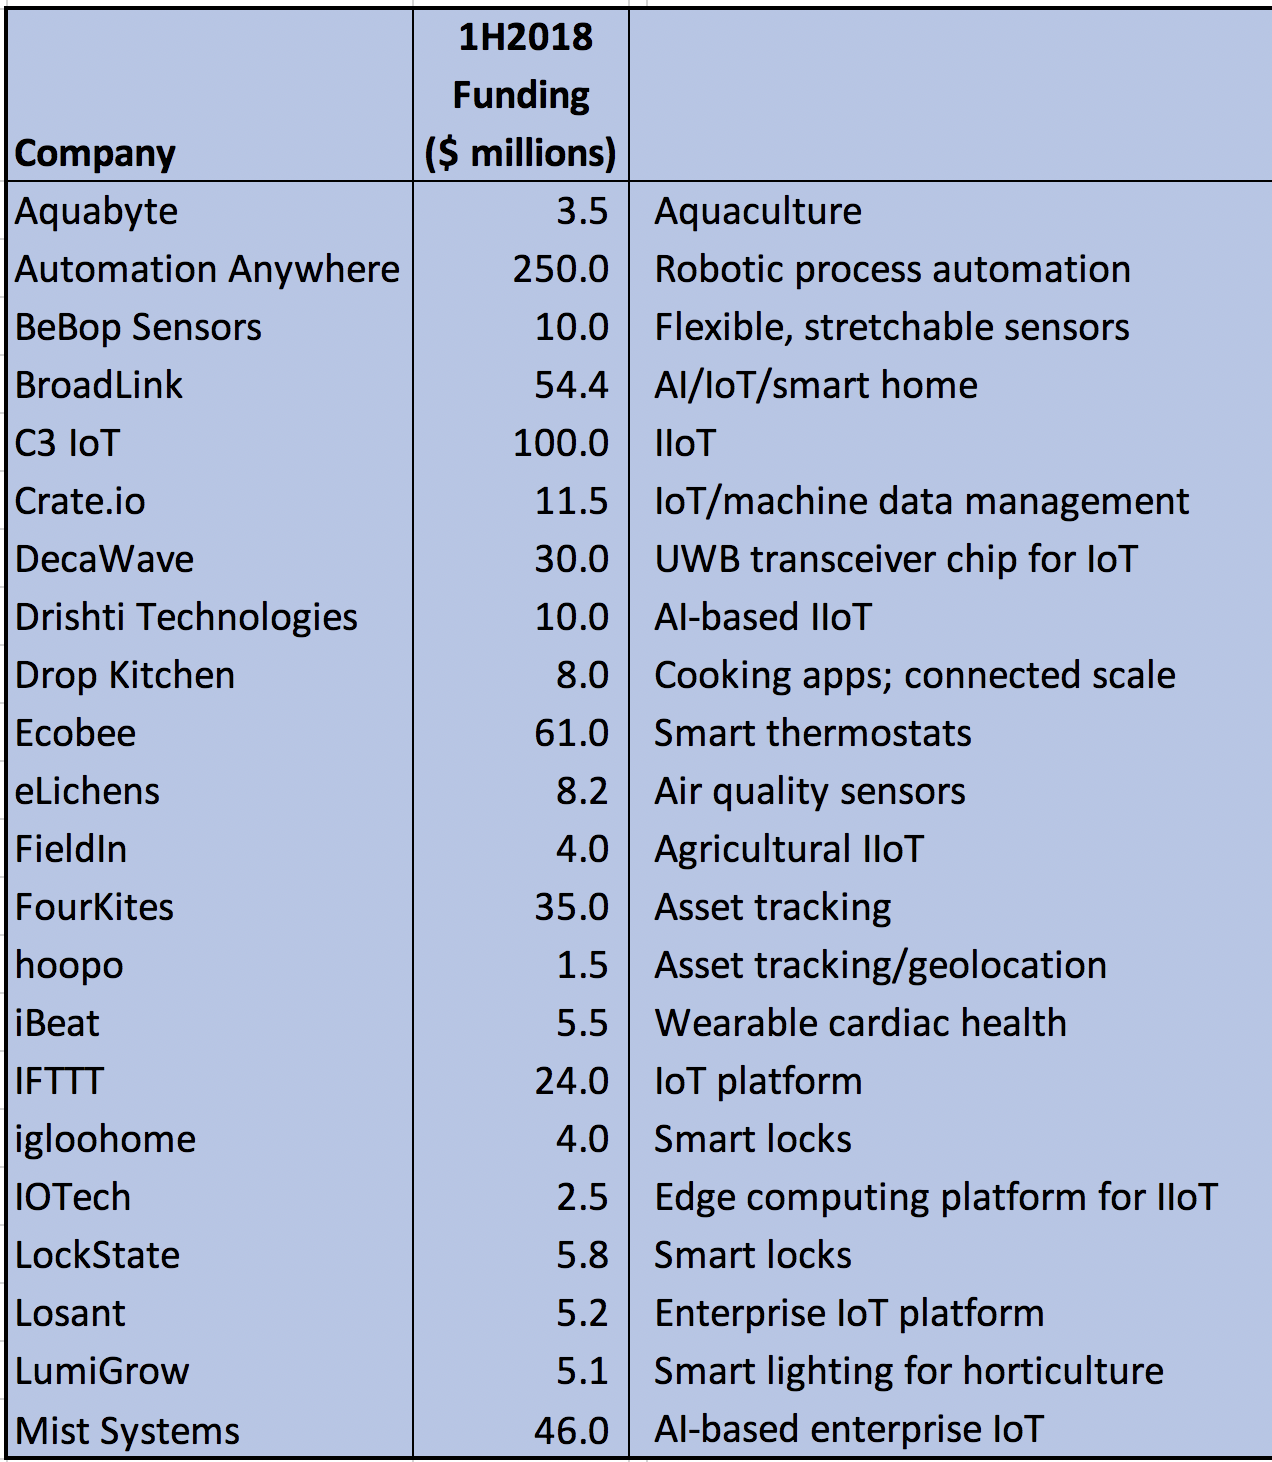 Semiconductor Engineering - $8 5B For Auto, IoT, Security